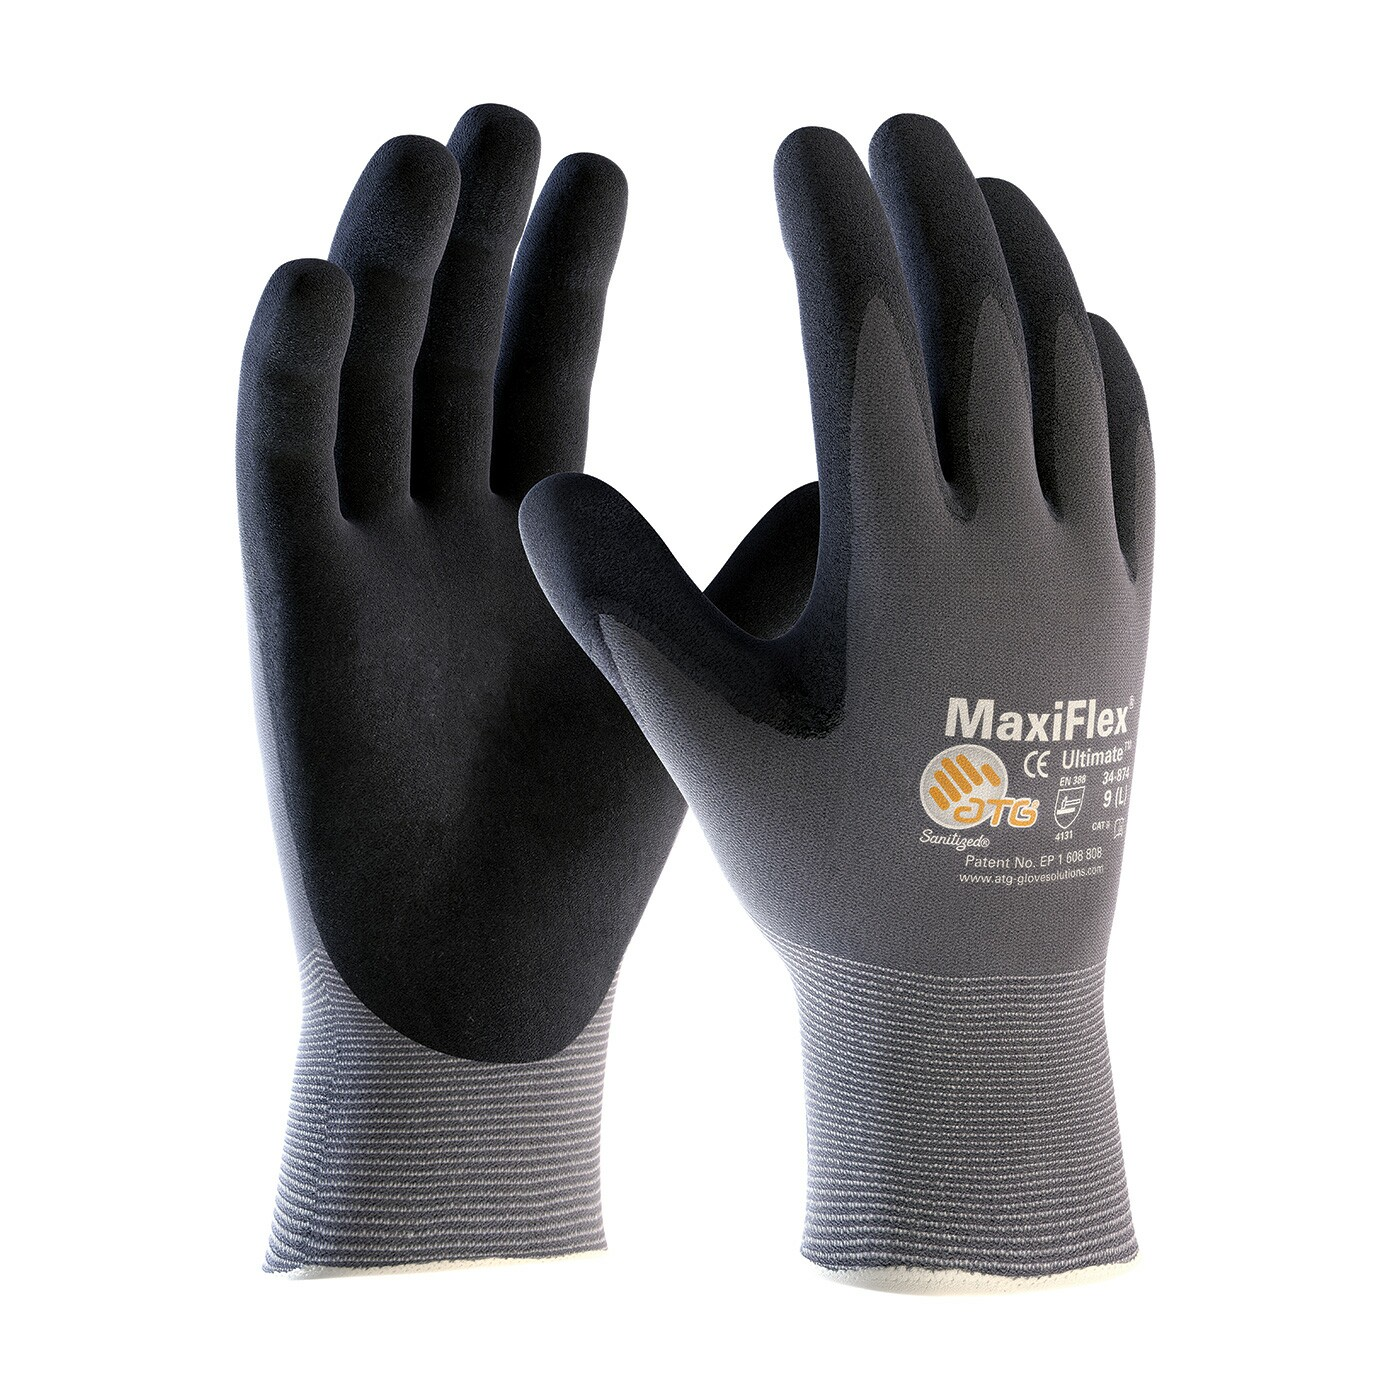 Atg Maxiflex Ultimate Coated Gloves Coated Gloves